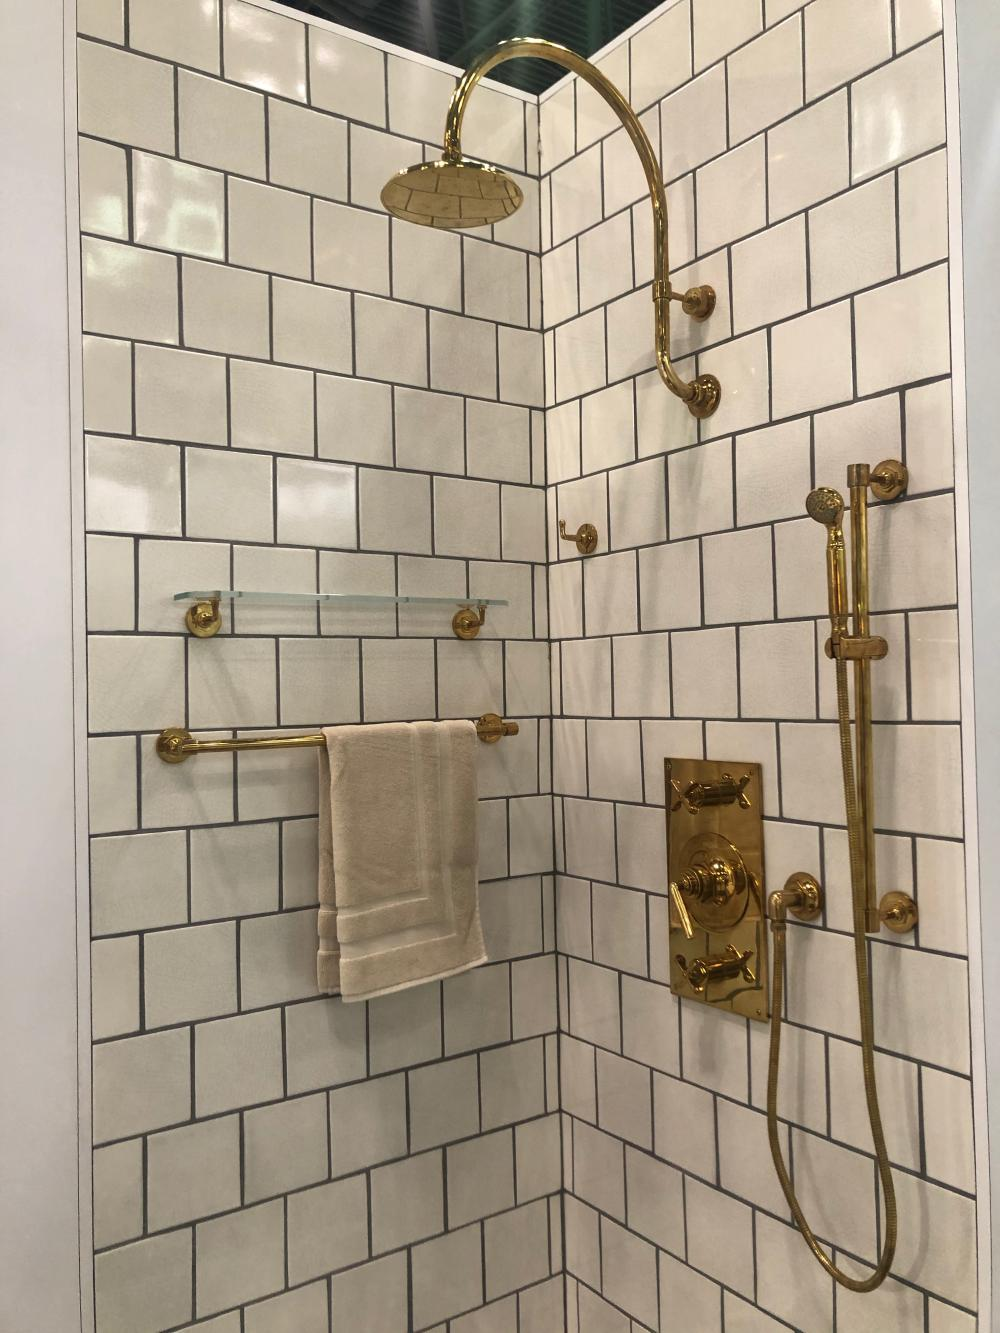 This shower by Waterworks has a classic look that will never go out of style.